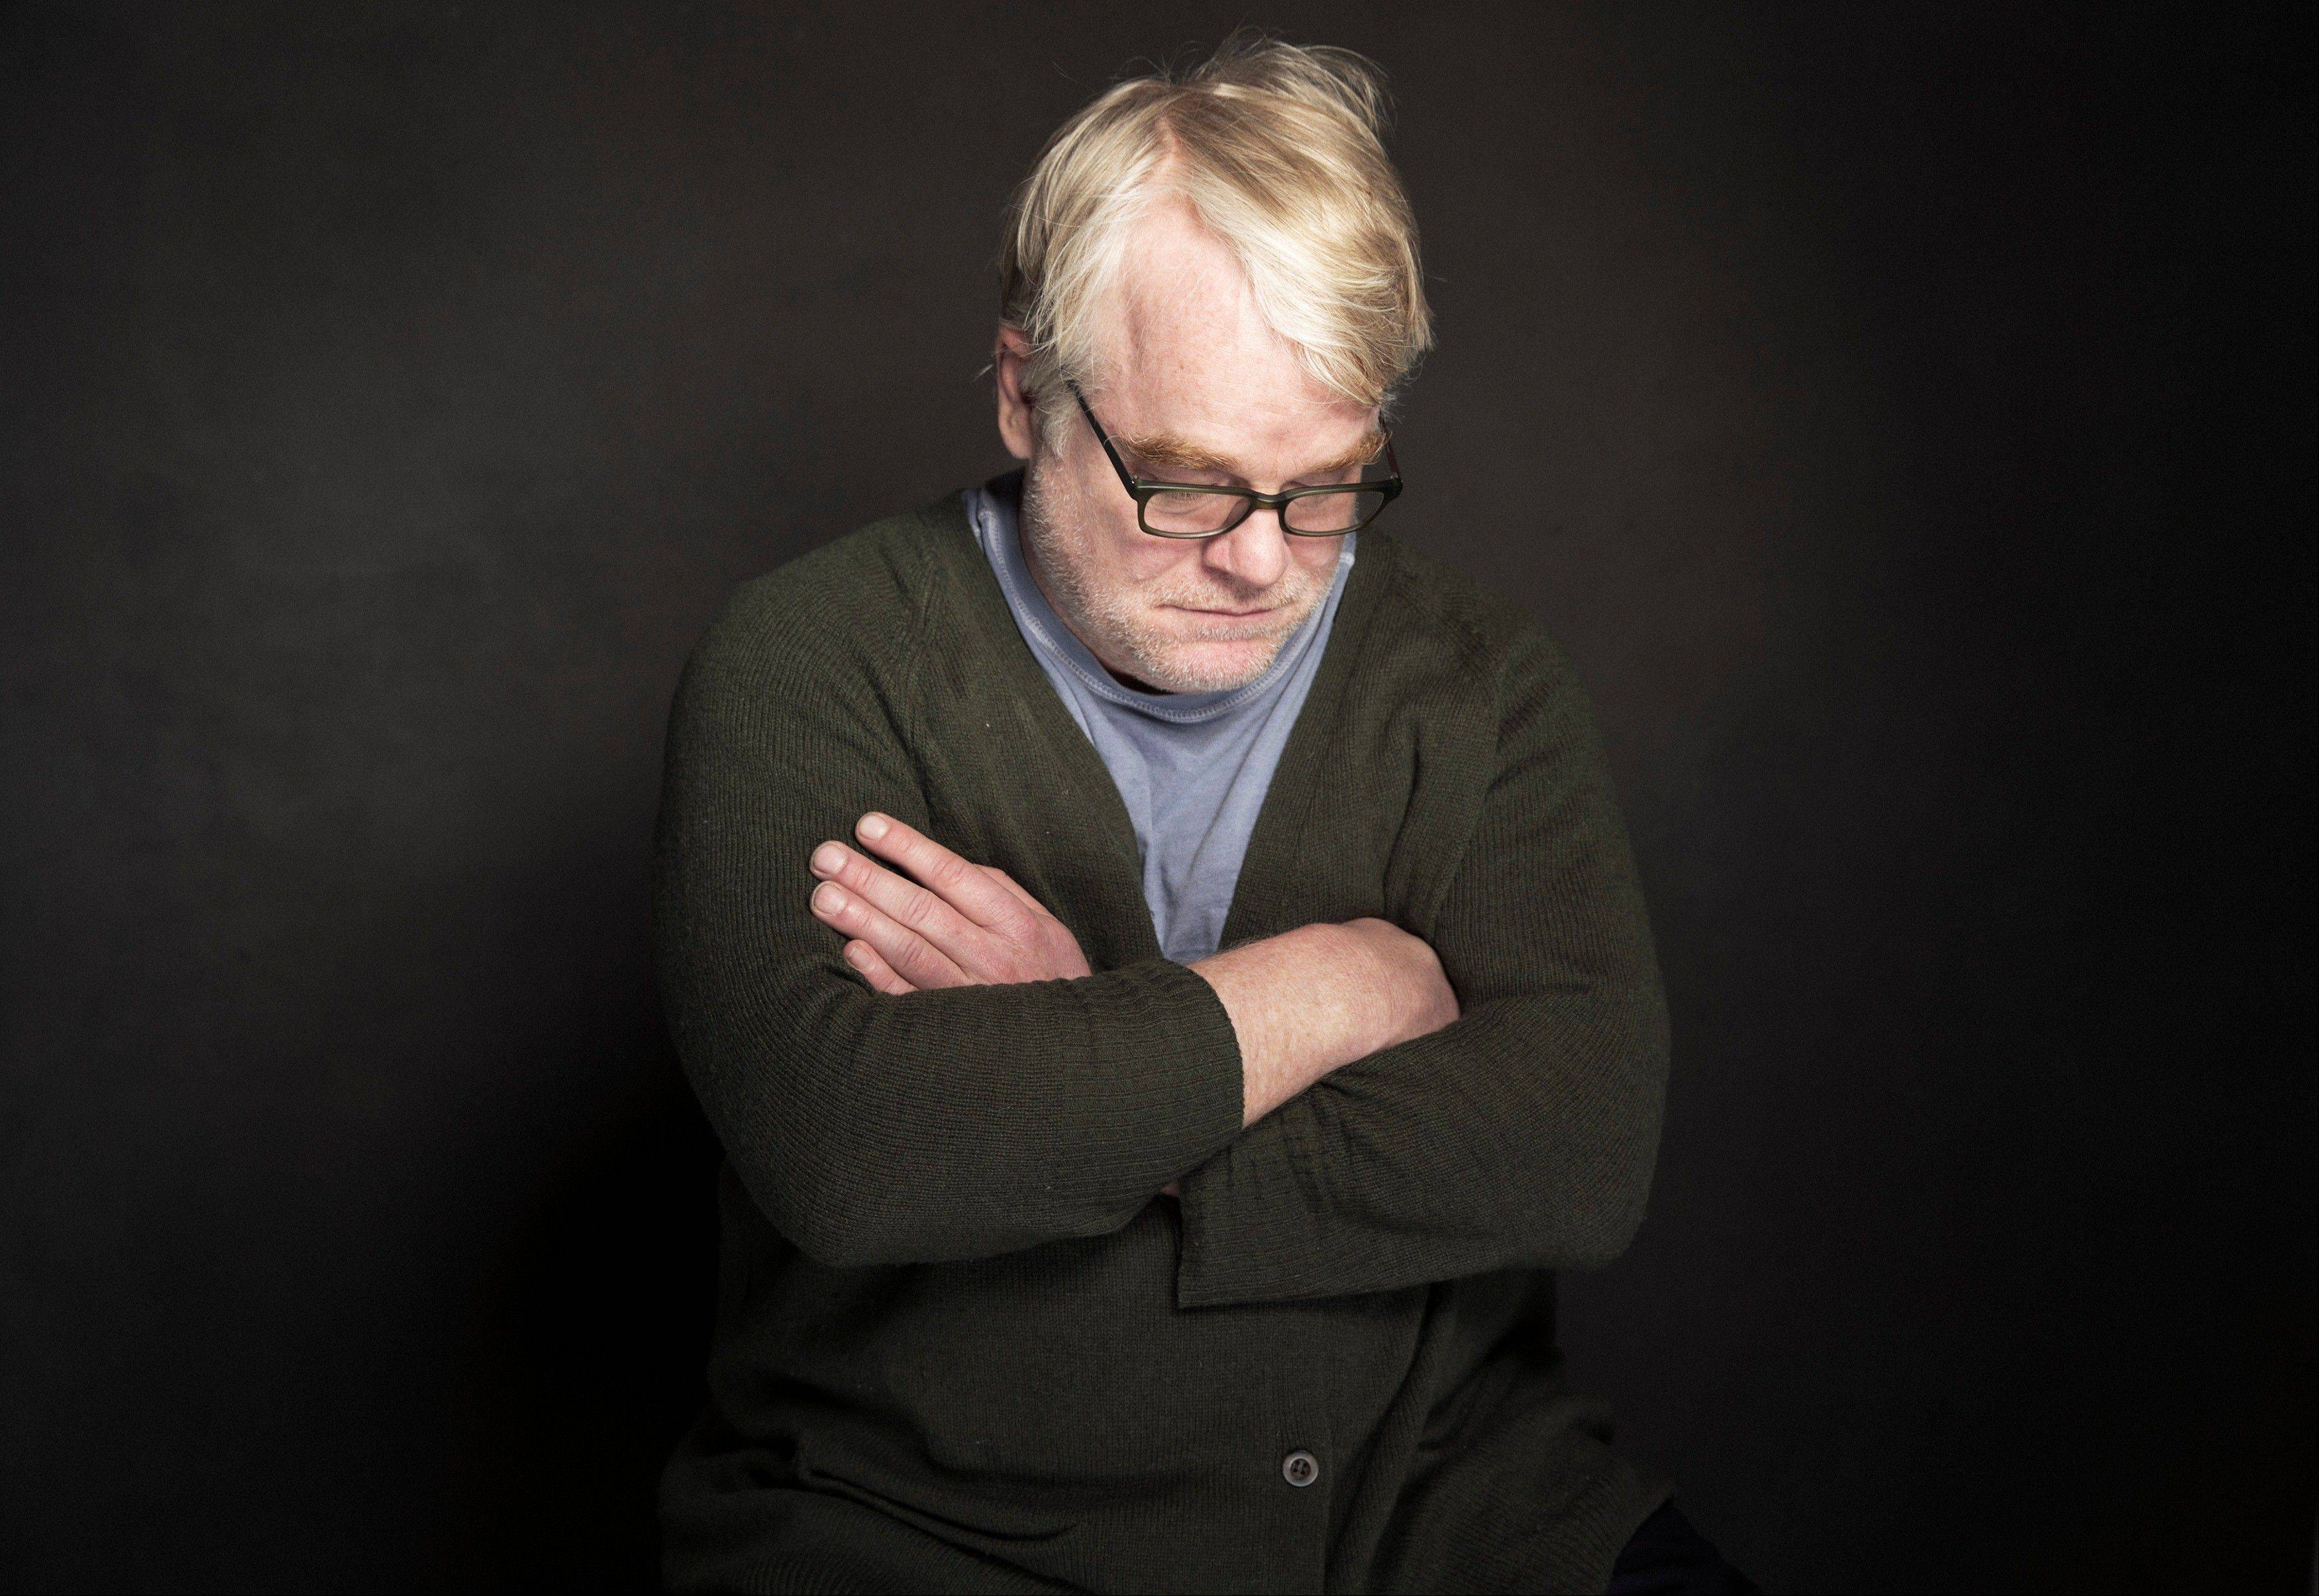 Philip Seymour Hoffman poses during the Sundance Film Festival last month. Hoffman was found dead Sunday, Feb. 2, 2014, in his New York apartment. He was 46.